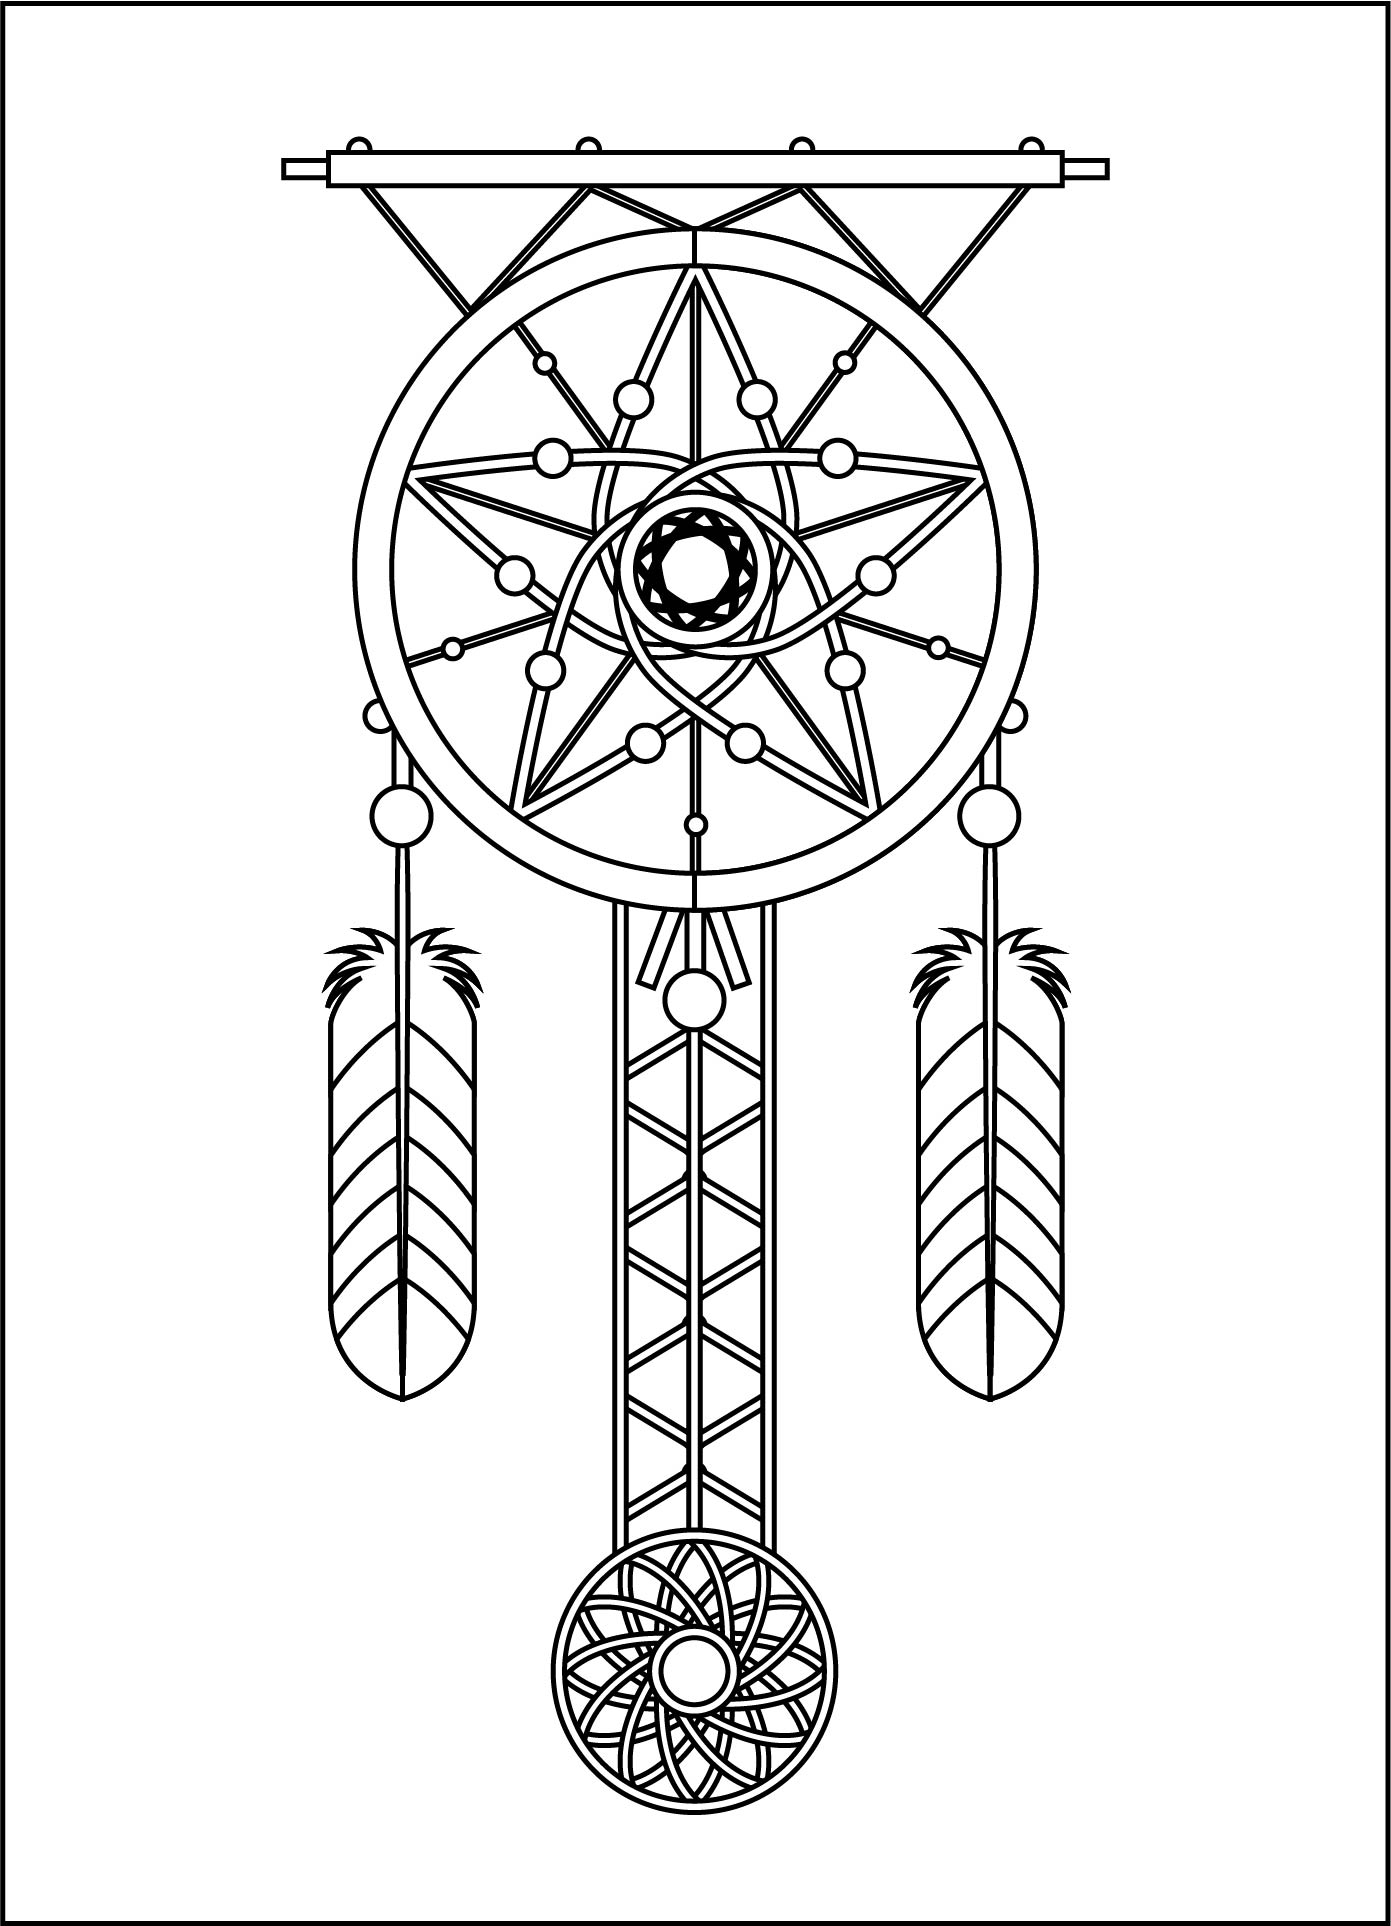 7 Best Images of Free Printable Native American Designs